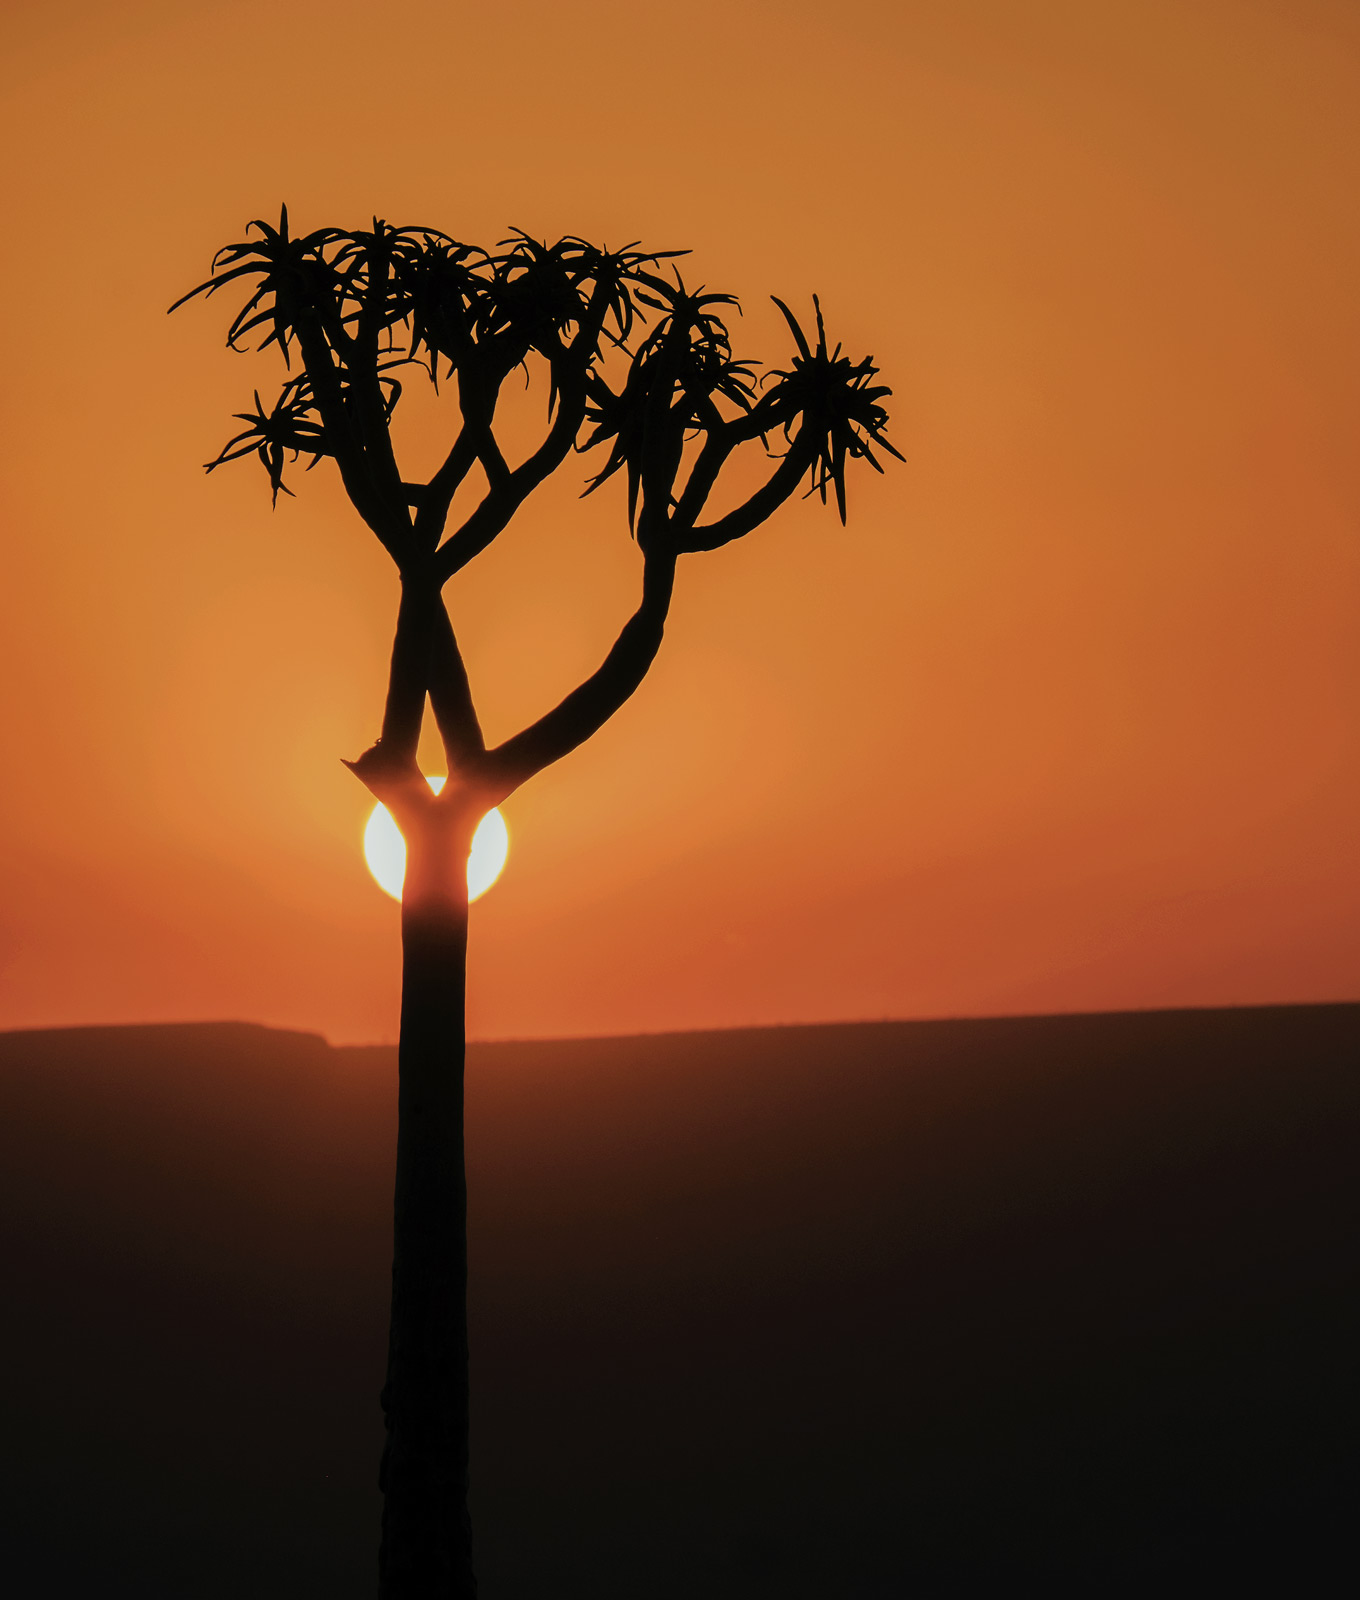 The silhouette shape of Namibia's fabulous quiver trees. There was only the one so I waited and aligned the setting sun...